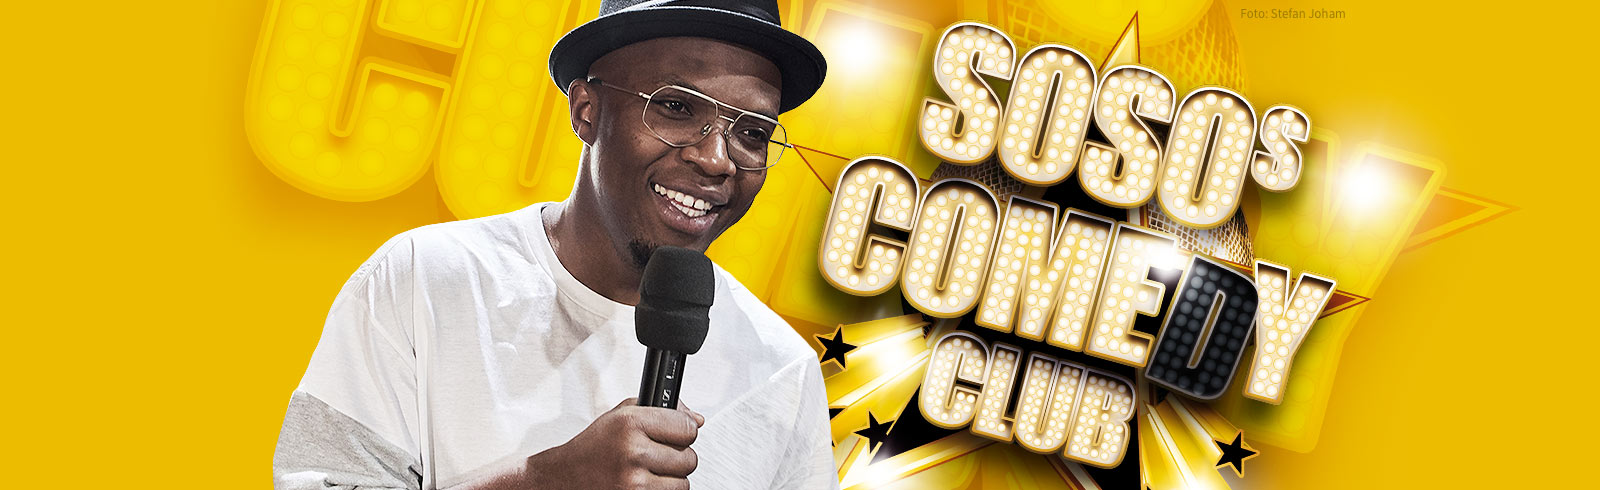 Soso's Comedy Club